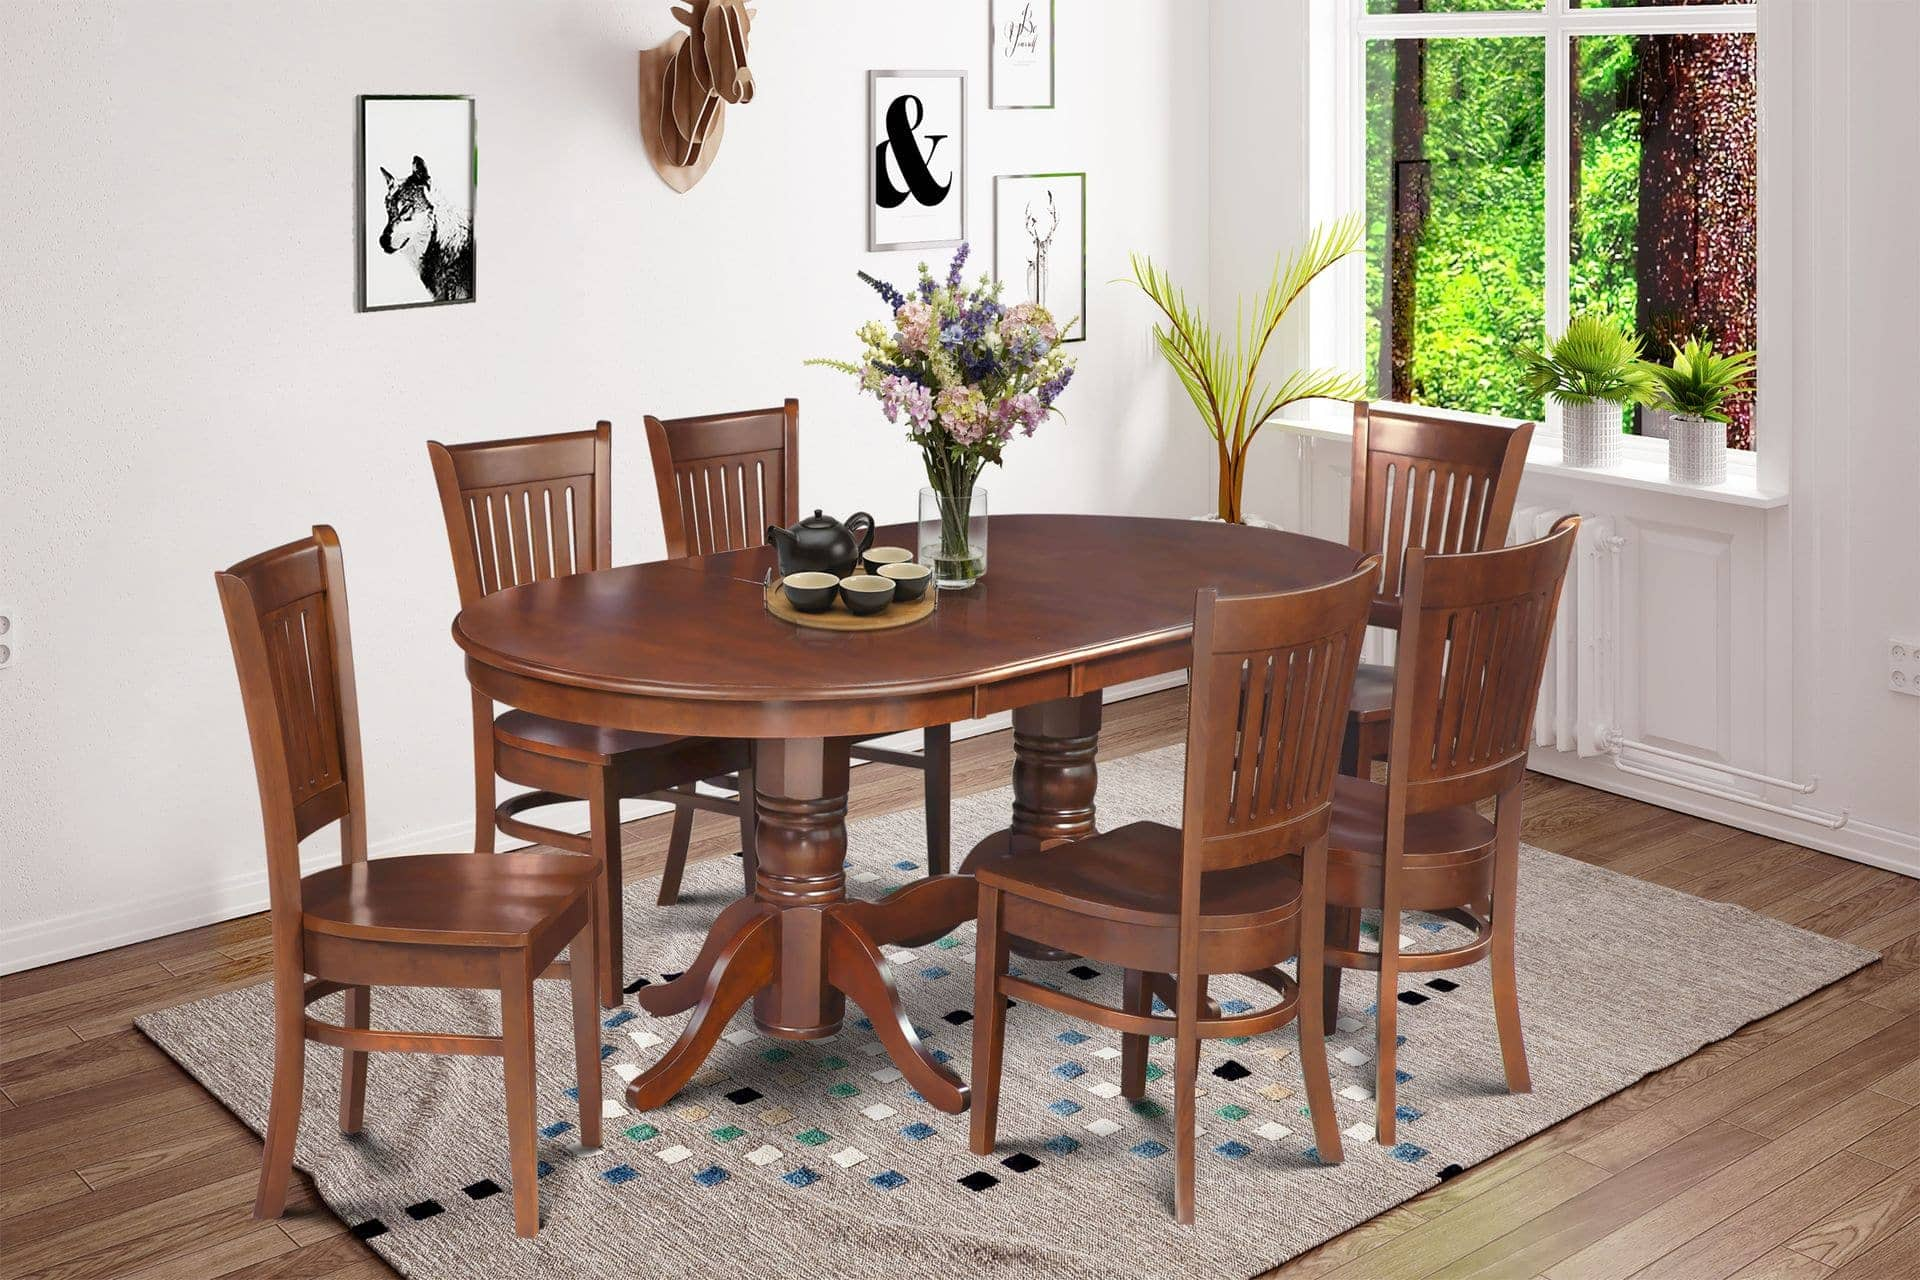 Trithi Furniture Donwego Oval Dining Table